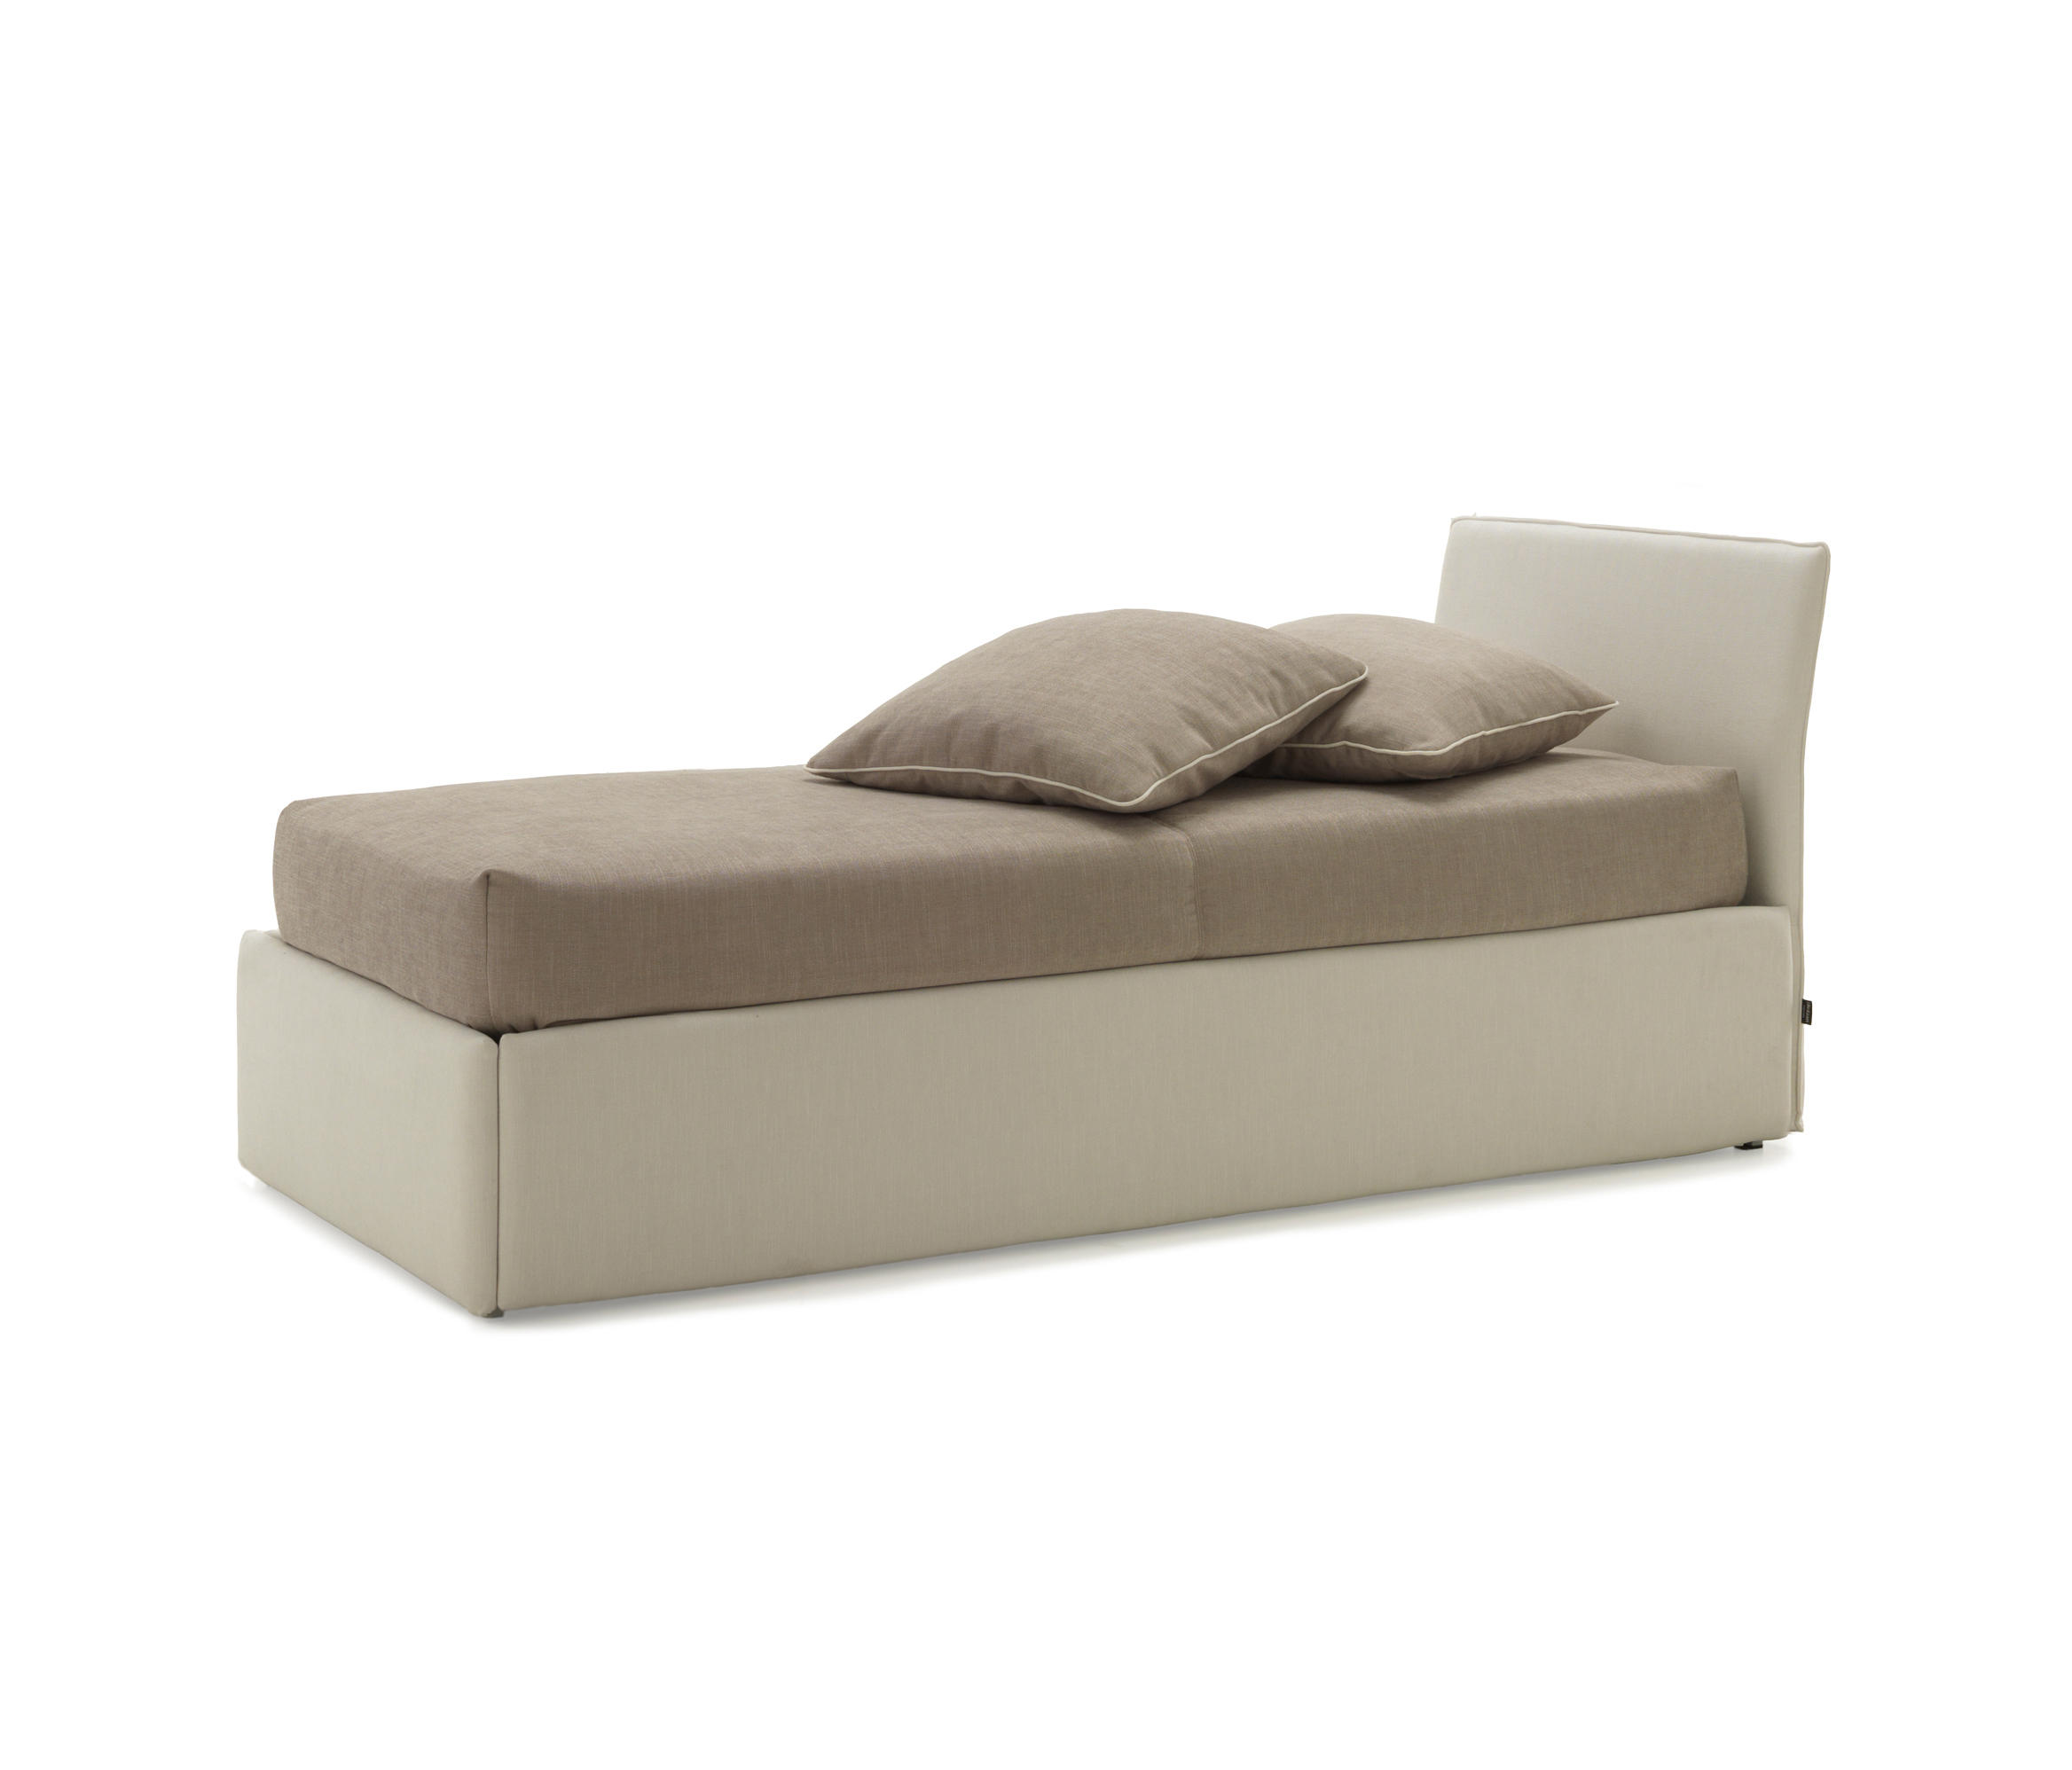 Fly 22 Single Beds From Bolzan Letti Architonic # Muebles Hickory